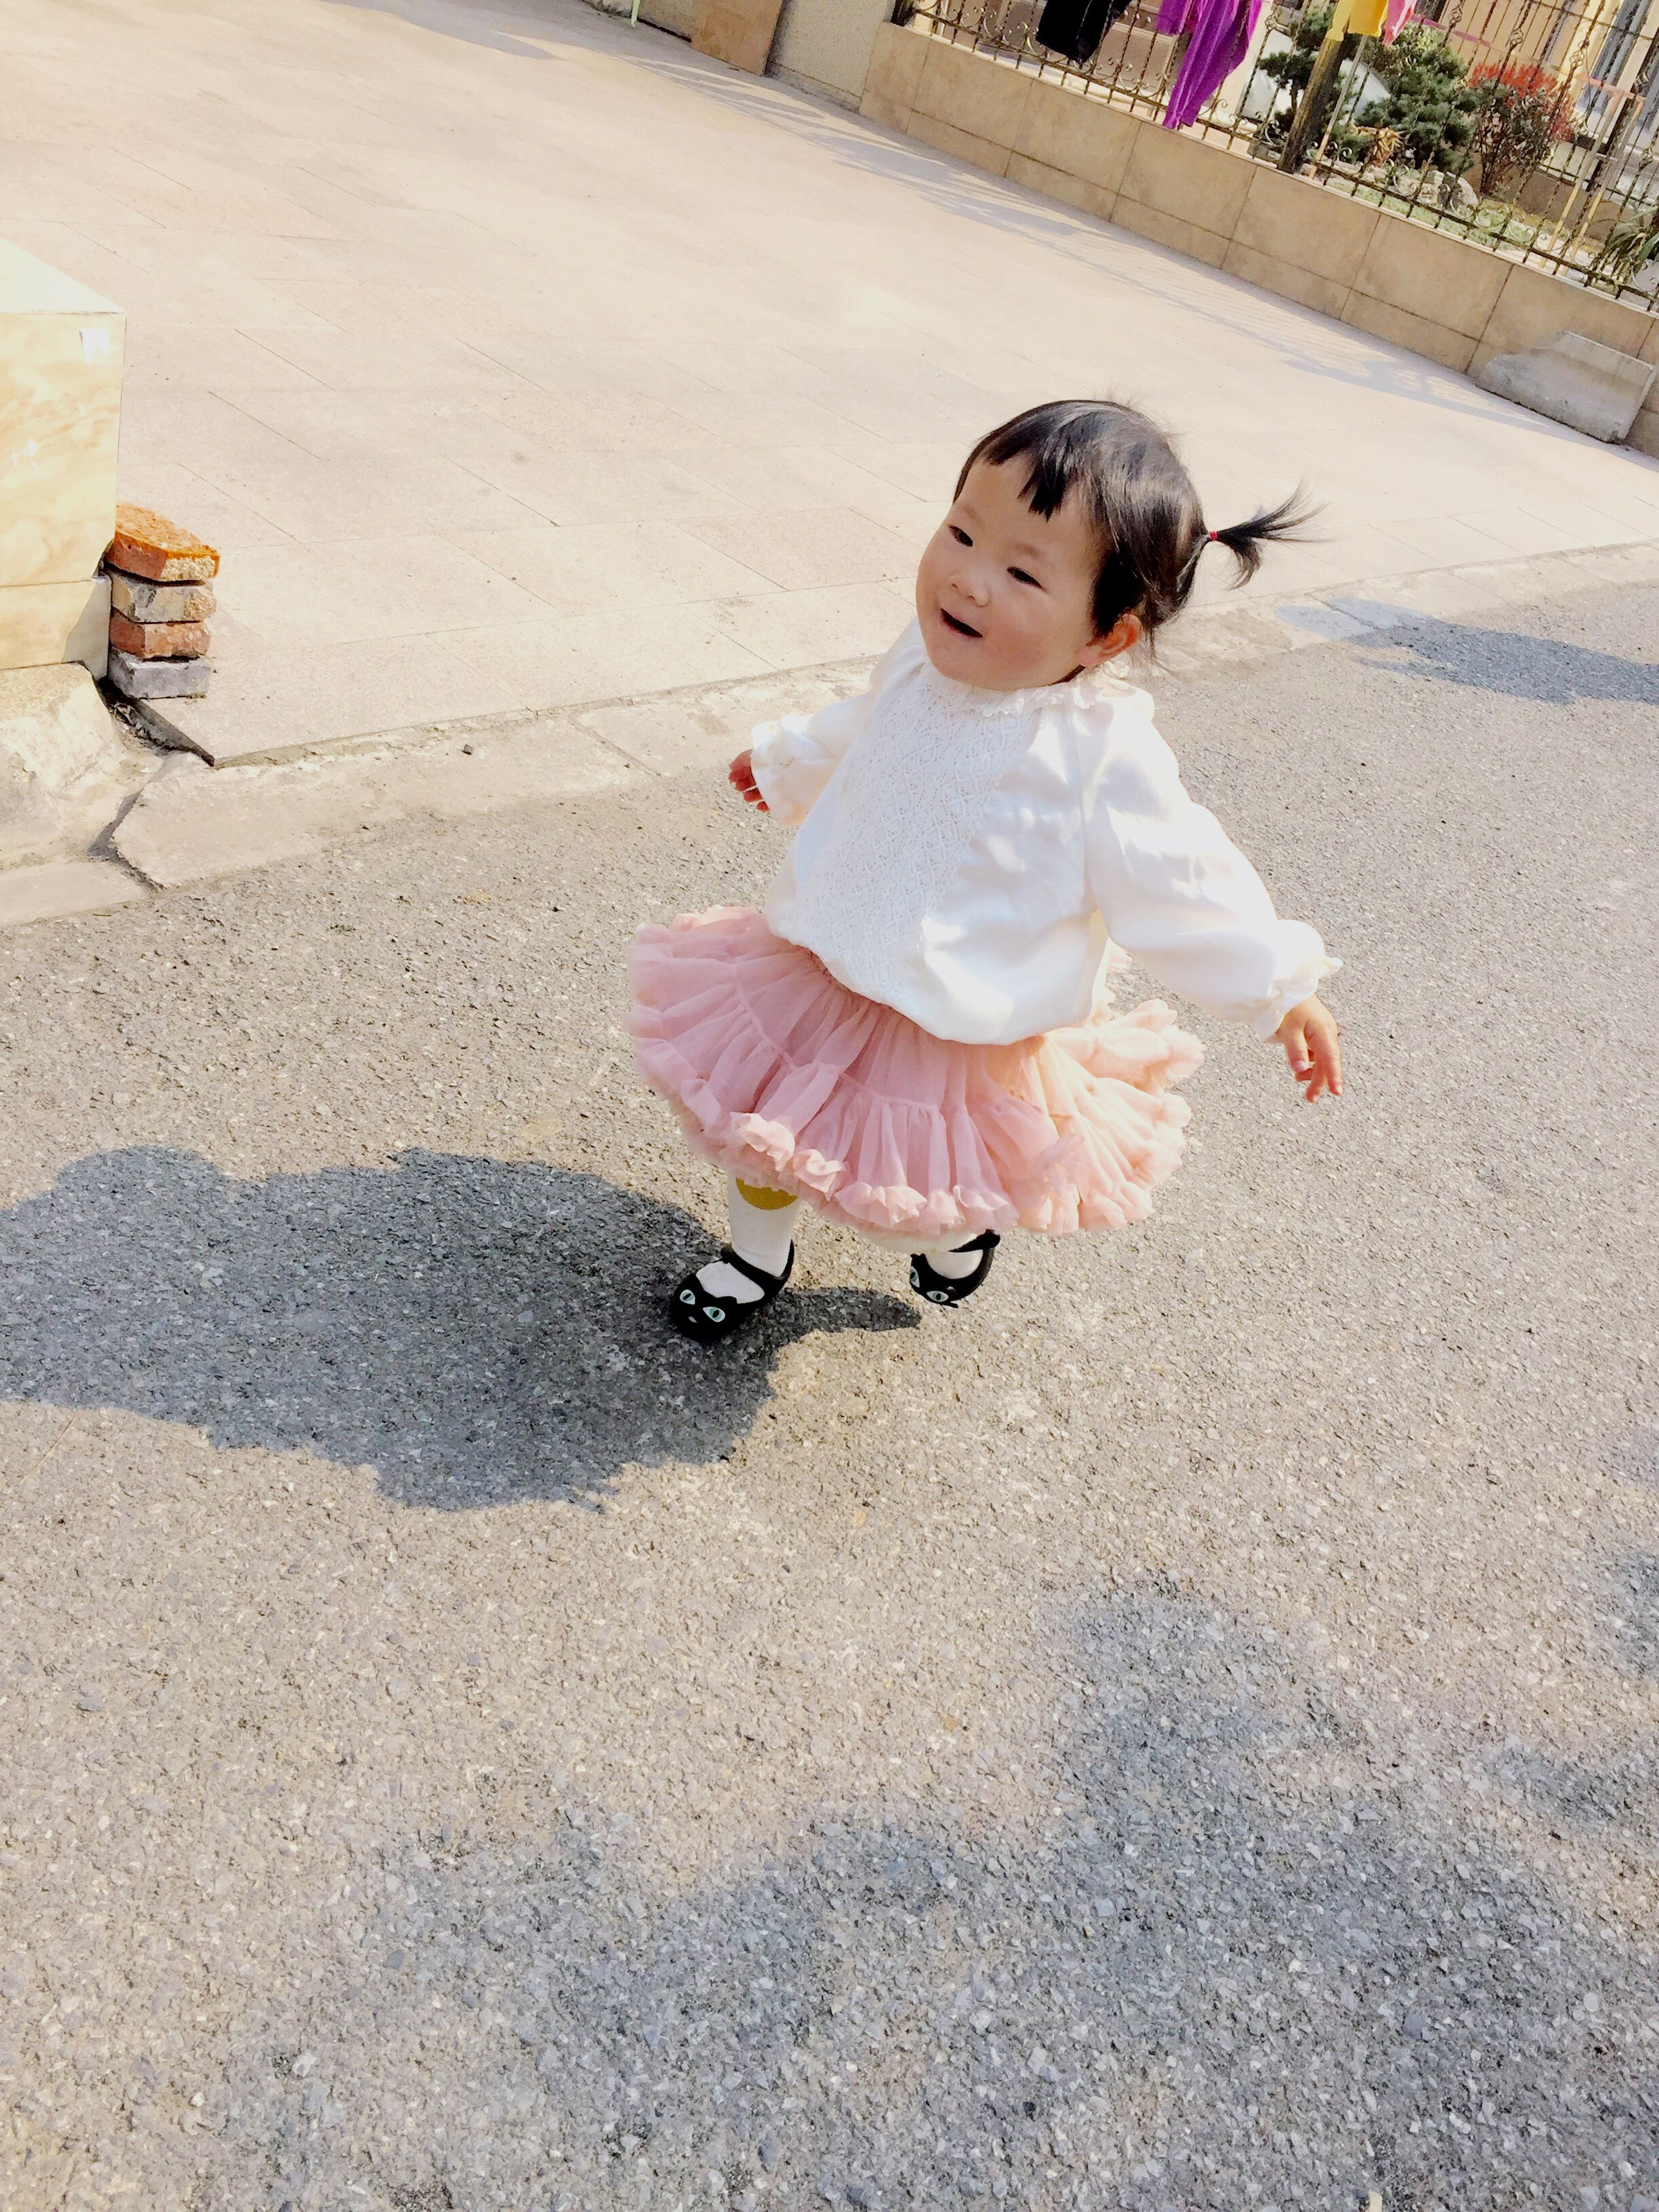 childhood, full length, elementary age, person, innocence, high angle view, girls, cute, lifestyles, leisure activity, toy, boys, street, casual clothing, playful, happiness, fun, playing